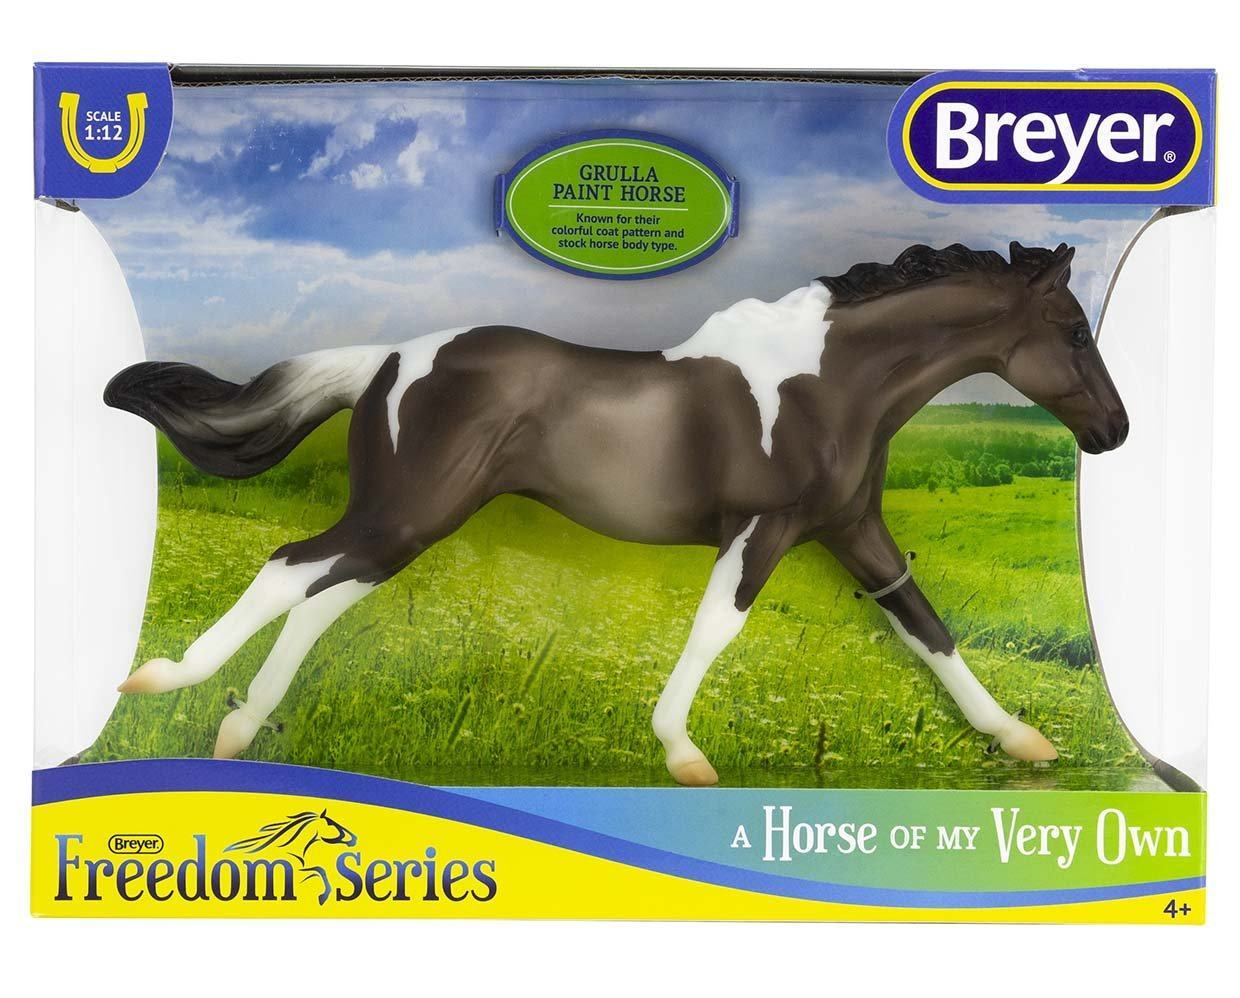 Breyer #946 Grulla Paint Quarter Horse - New Factory Sealed